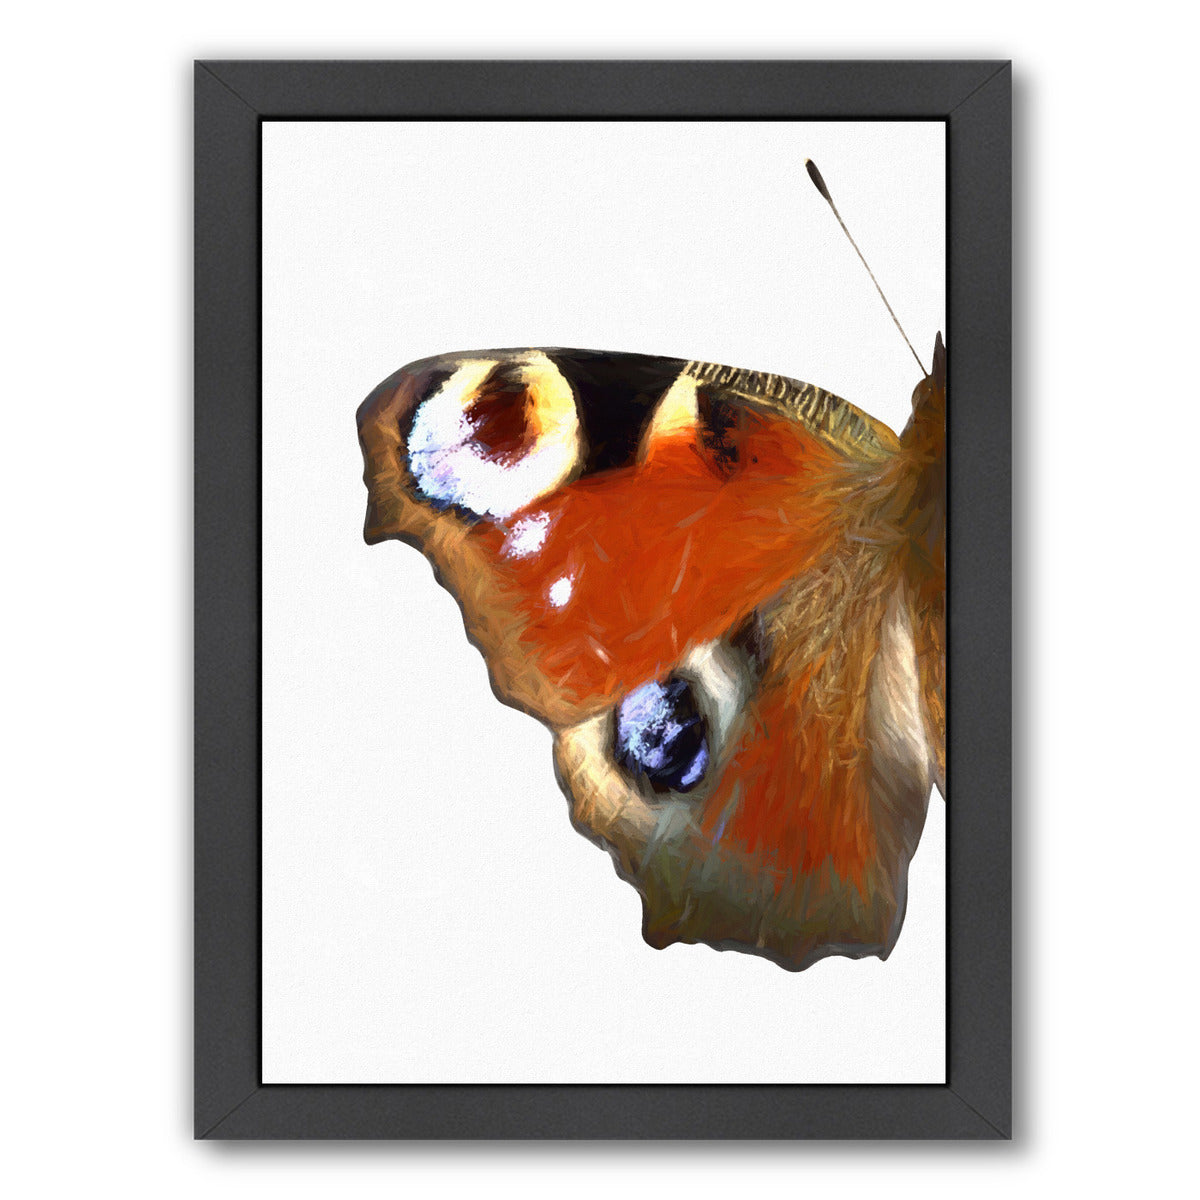 "Peacock Butterfly Wing I By Chaos & Wonder Design - Black Framed Print, Wall Art, Chaos & Wonder Design, 8"" x 10"""